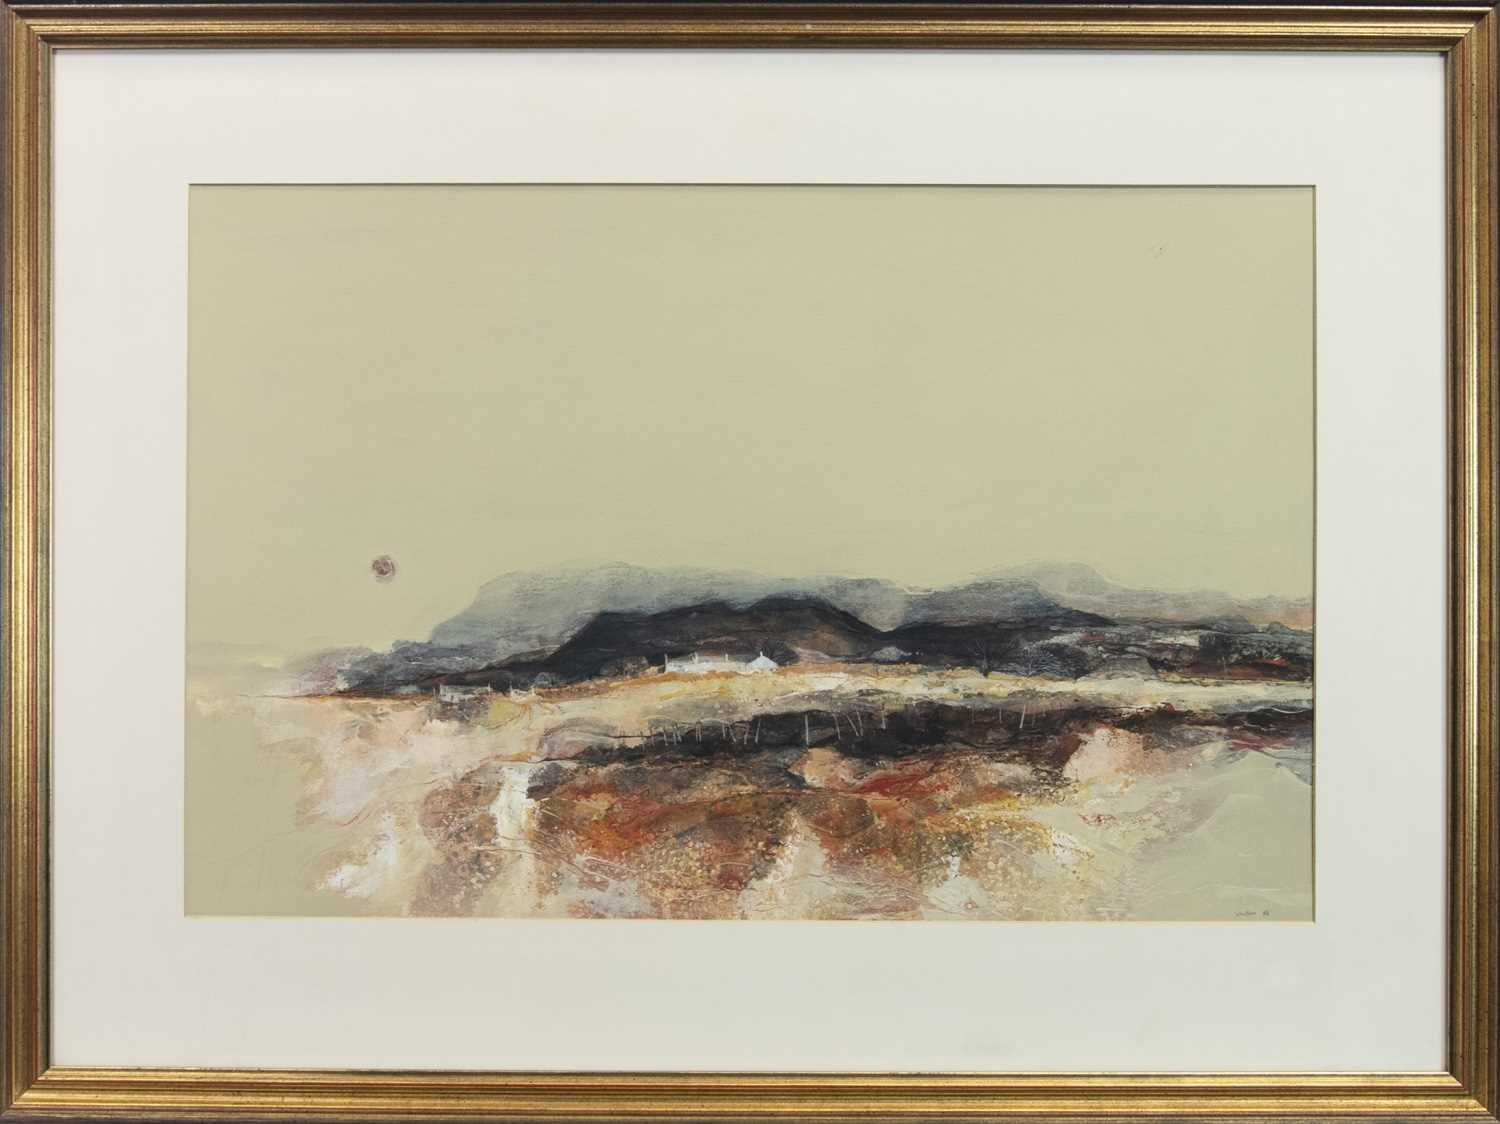 Lot 762 - QUIET EVENING, KINTYRE, A GOUACHE AND ACRYLIC BY GORDON HOPE WYLLIE